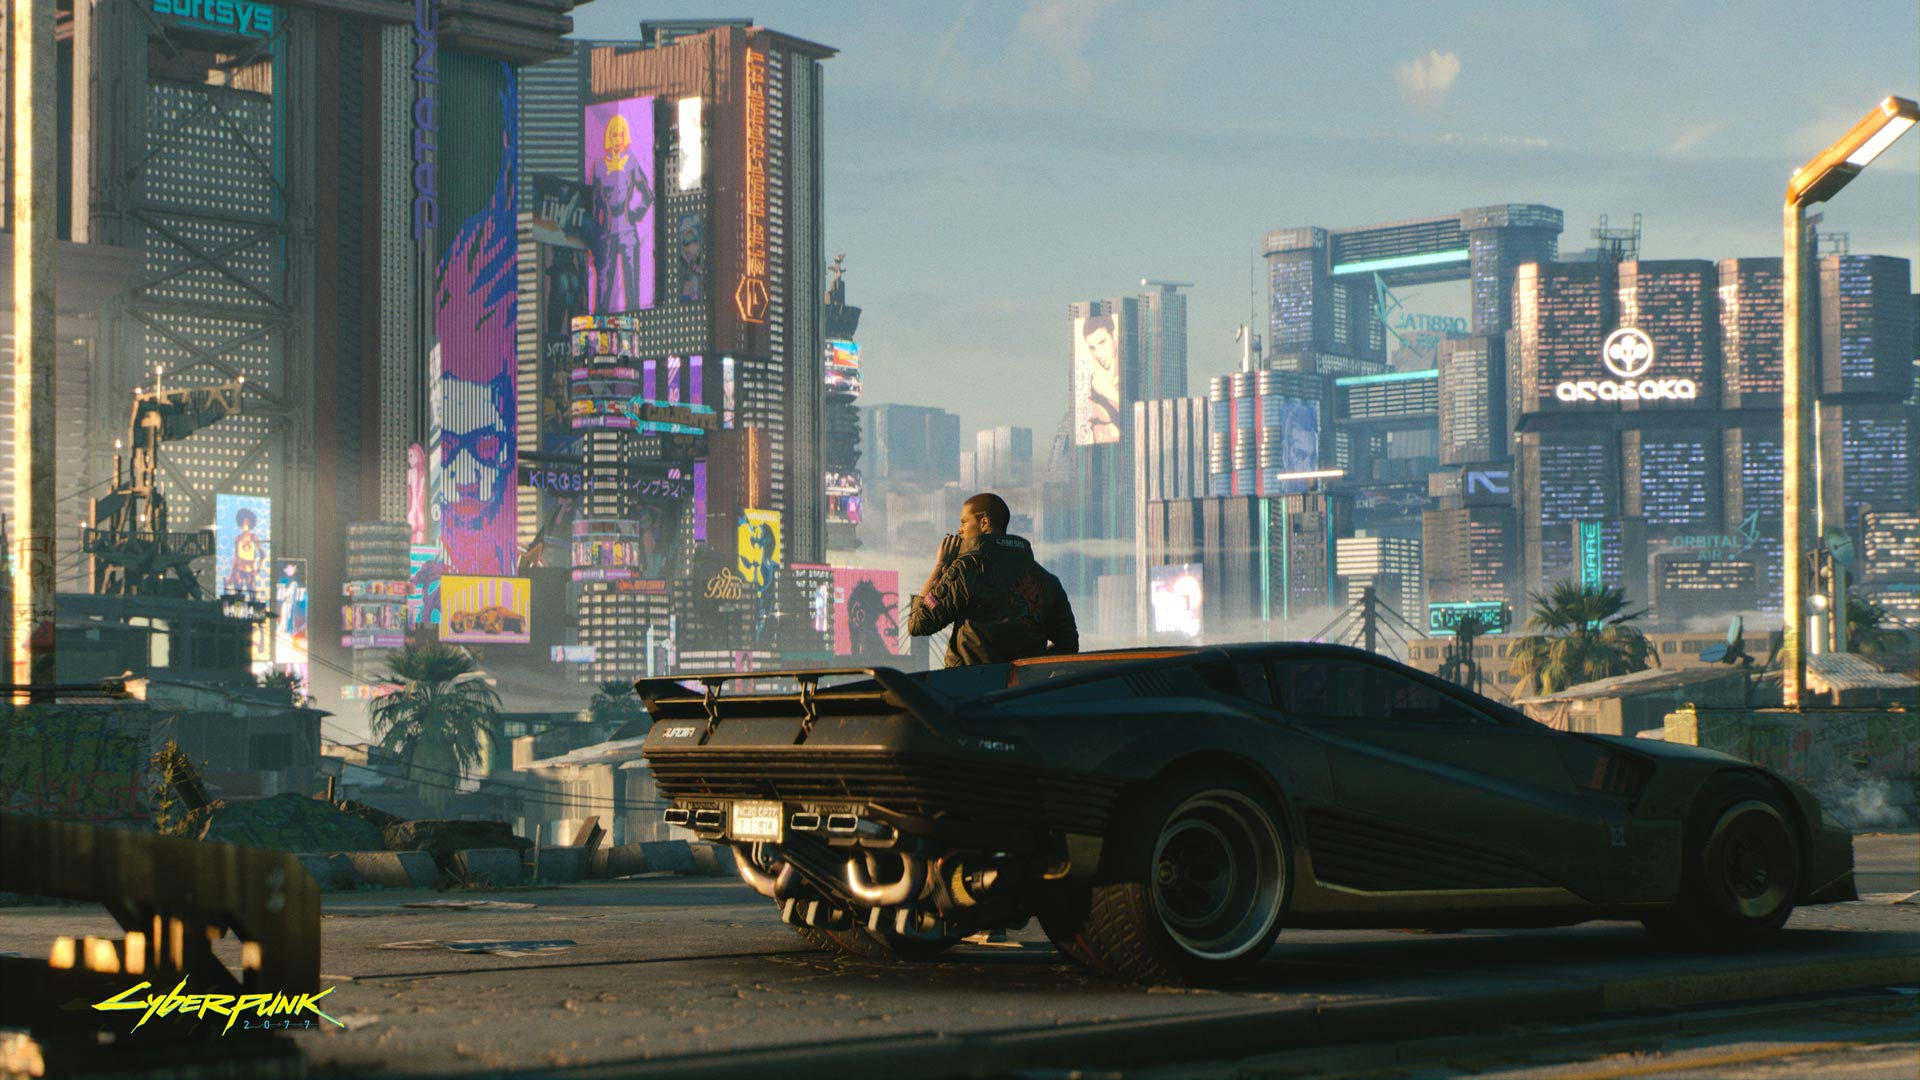 Cyberpunk 2077: Graphics, Nudity, Coolness